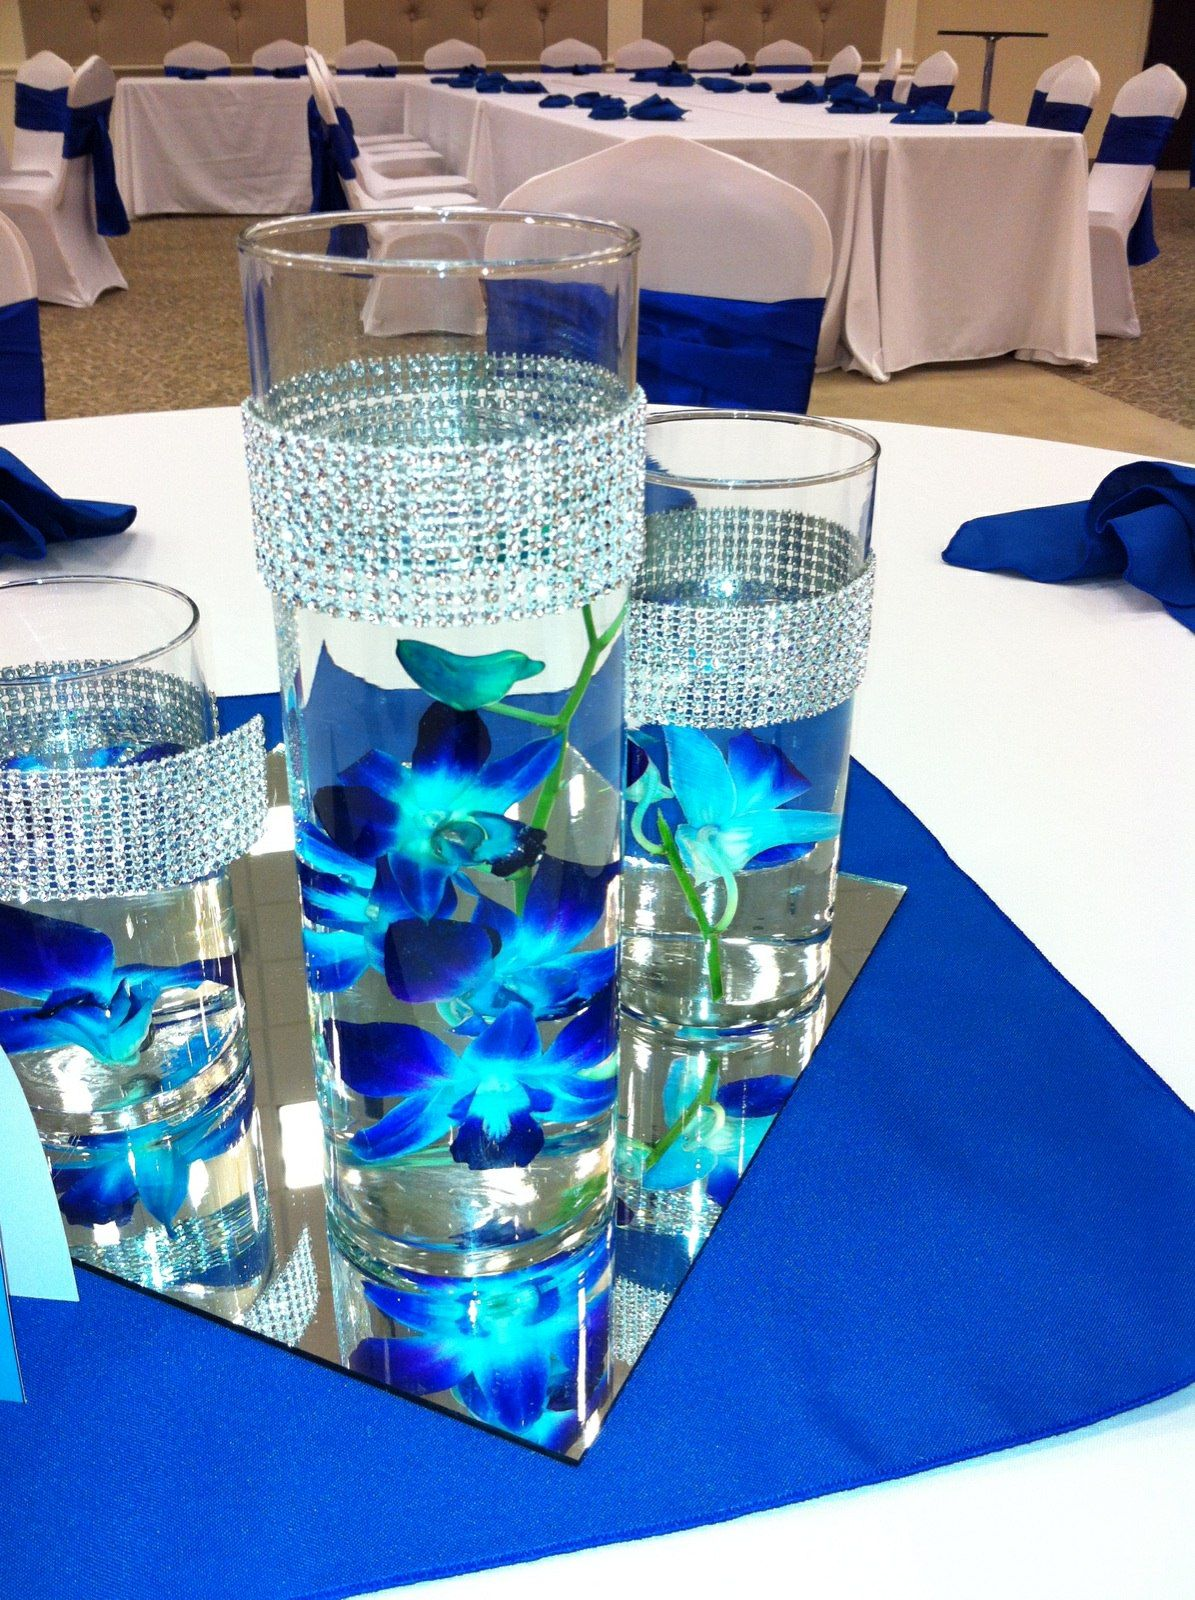 Submerged Blue Orchids With Bling Wrap Trimmed Vases Can Top With